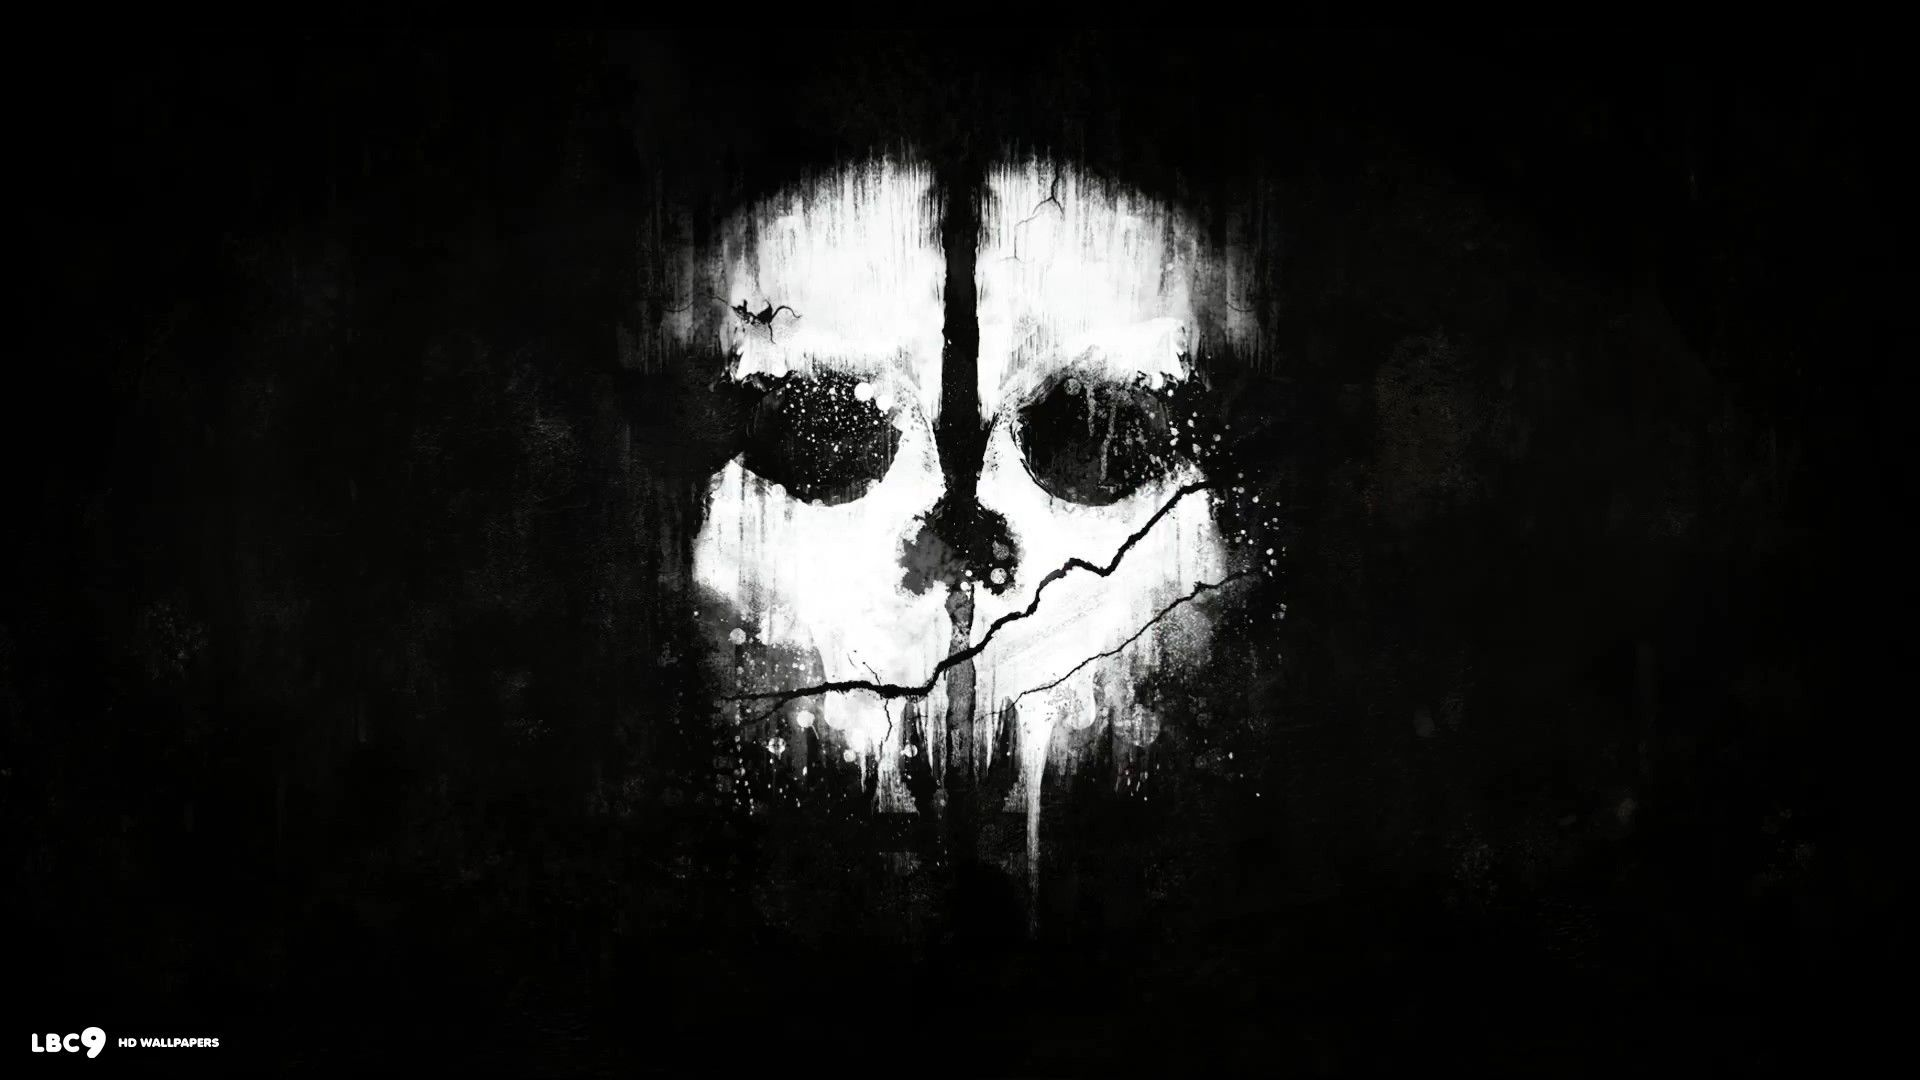 Call Of Duty Ghosts Skull Wallpaper For Android #m1i55